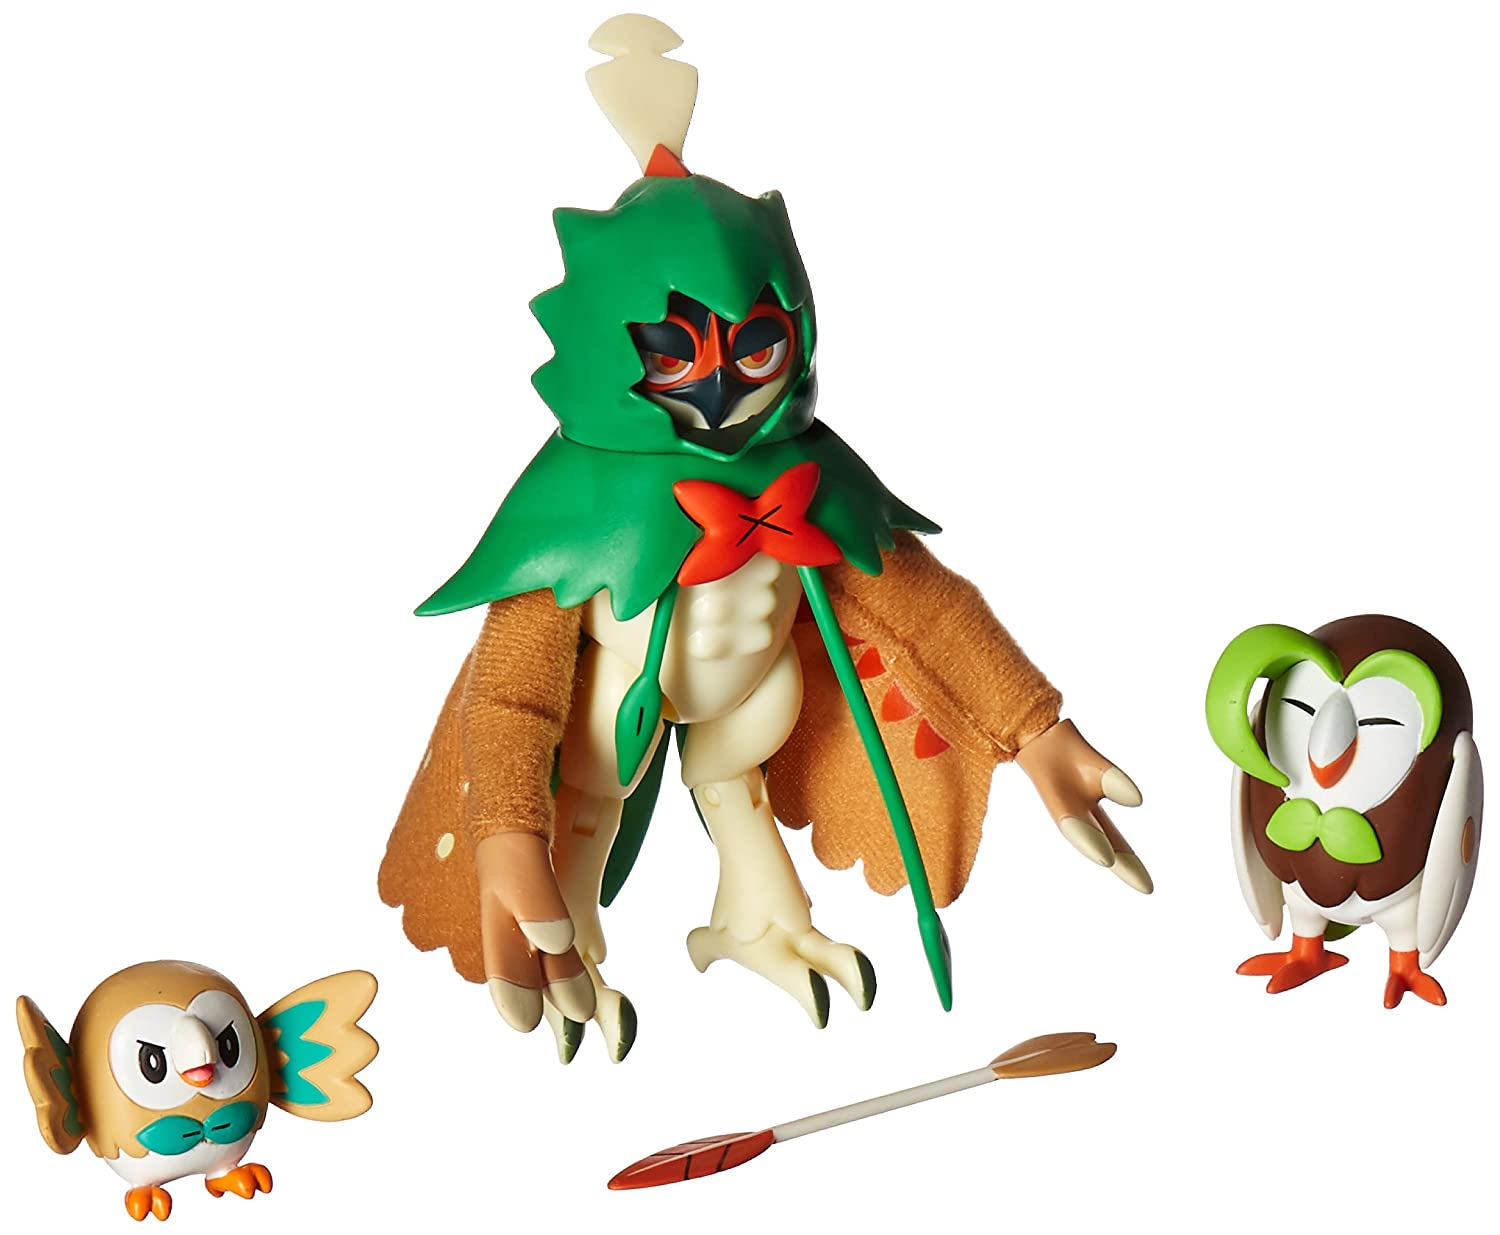 Amazoncom Pokemon Decidueye Evolution 3 Inch Action Figure